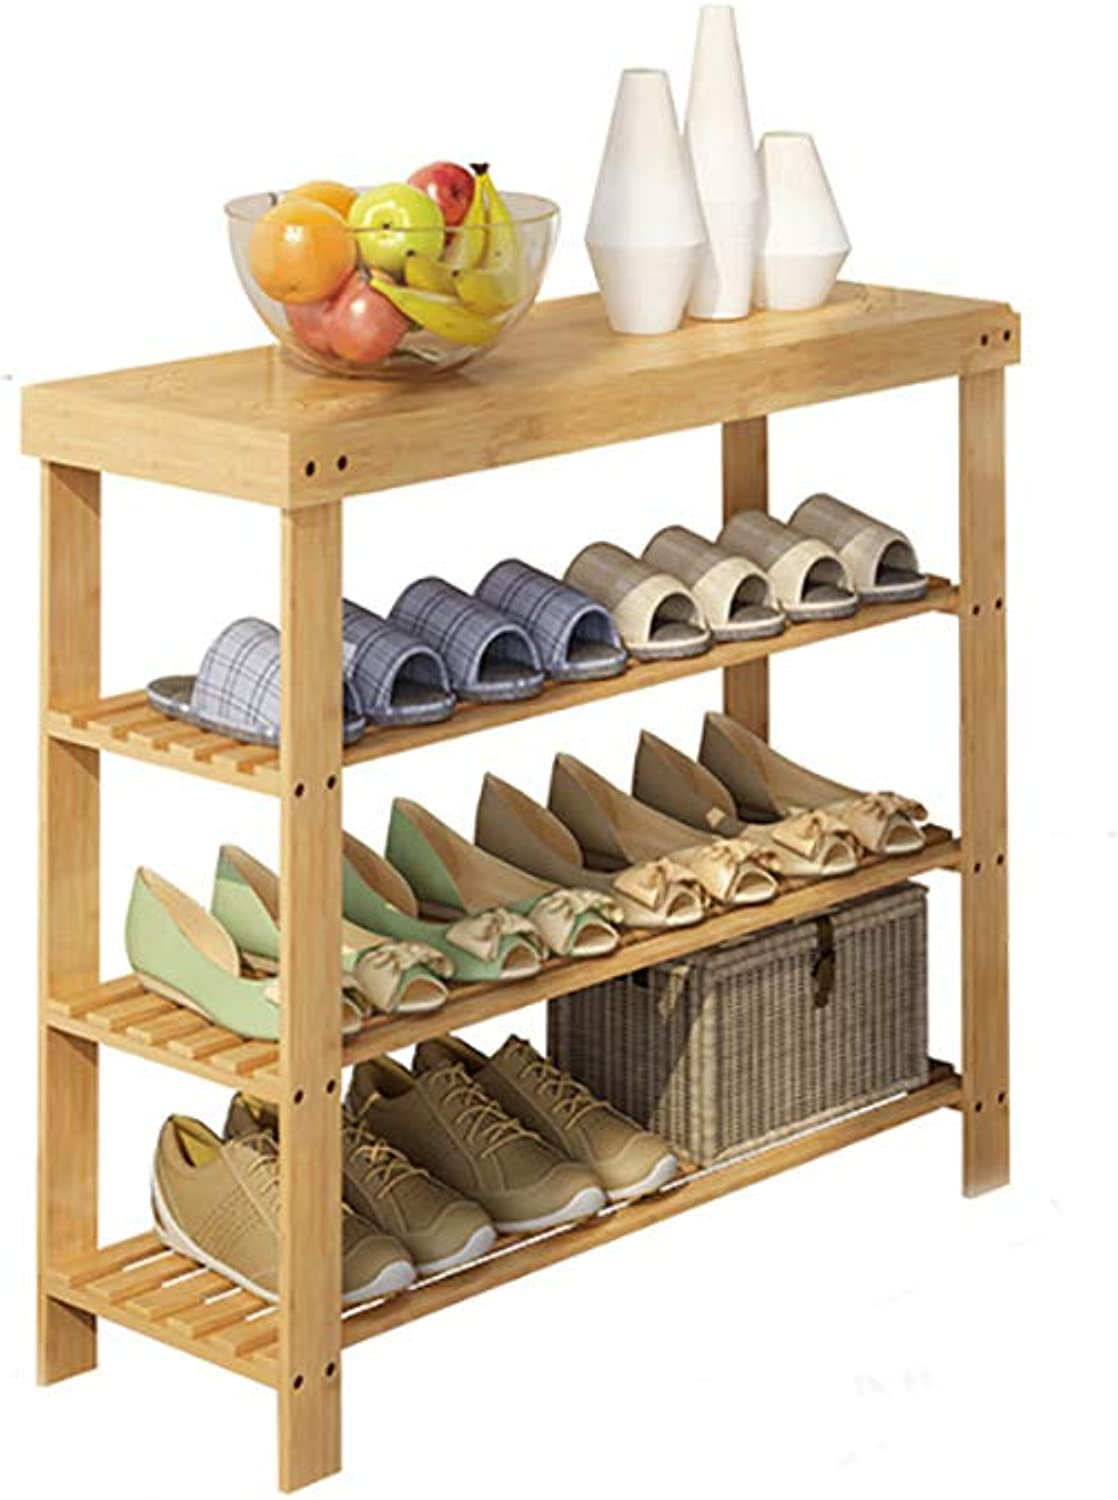 shoes Bench Organizing Rack Bamboo shoes Shelf Three-Layer dust-Proof Multi-Purpose shoes Change shoes Bench Economy Home Dormitory Shelves (Size   60  28  70cm)